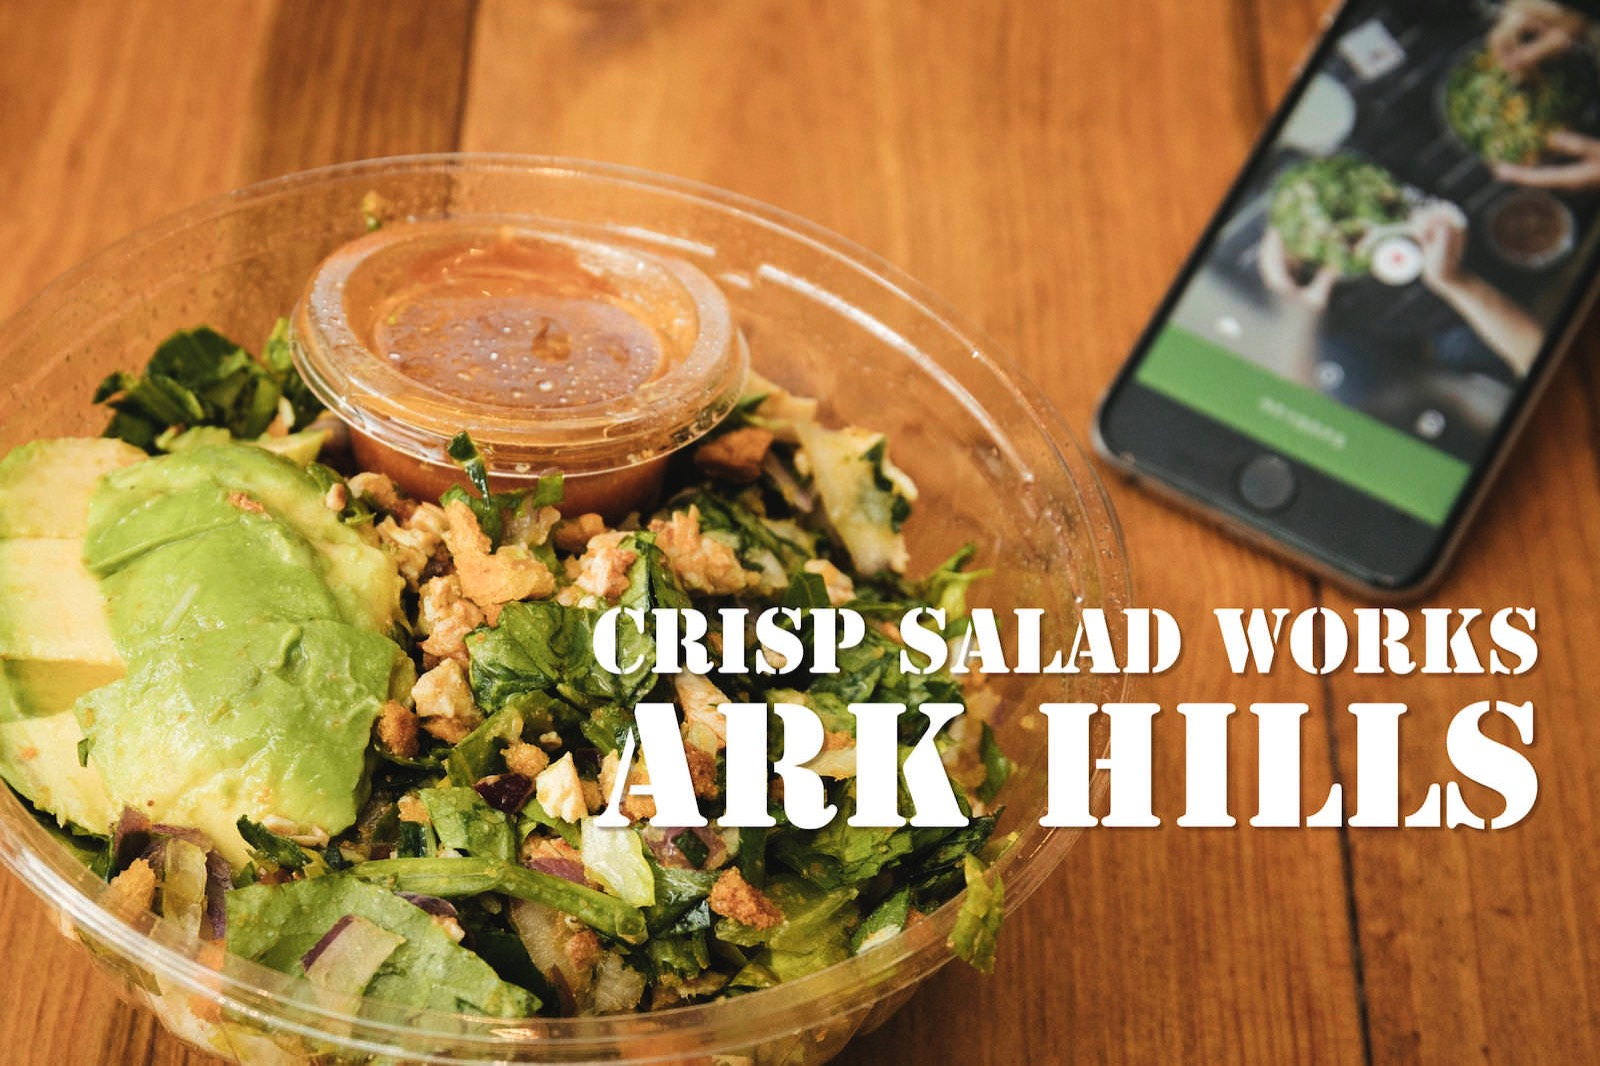 Crisp Salad Works Ark Hills